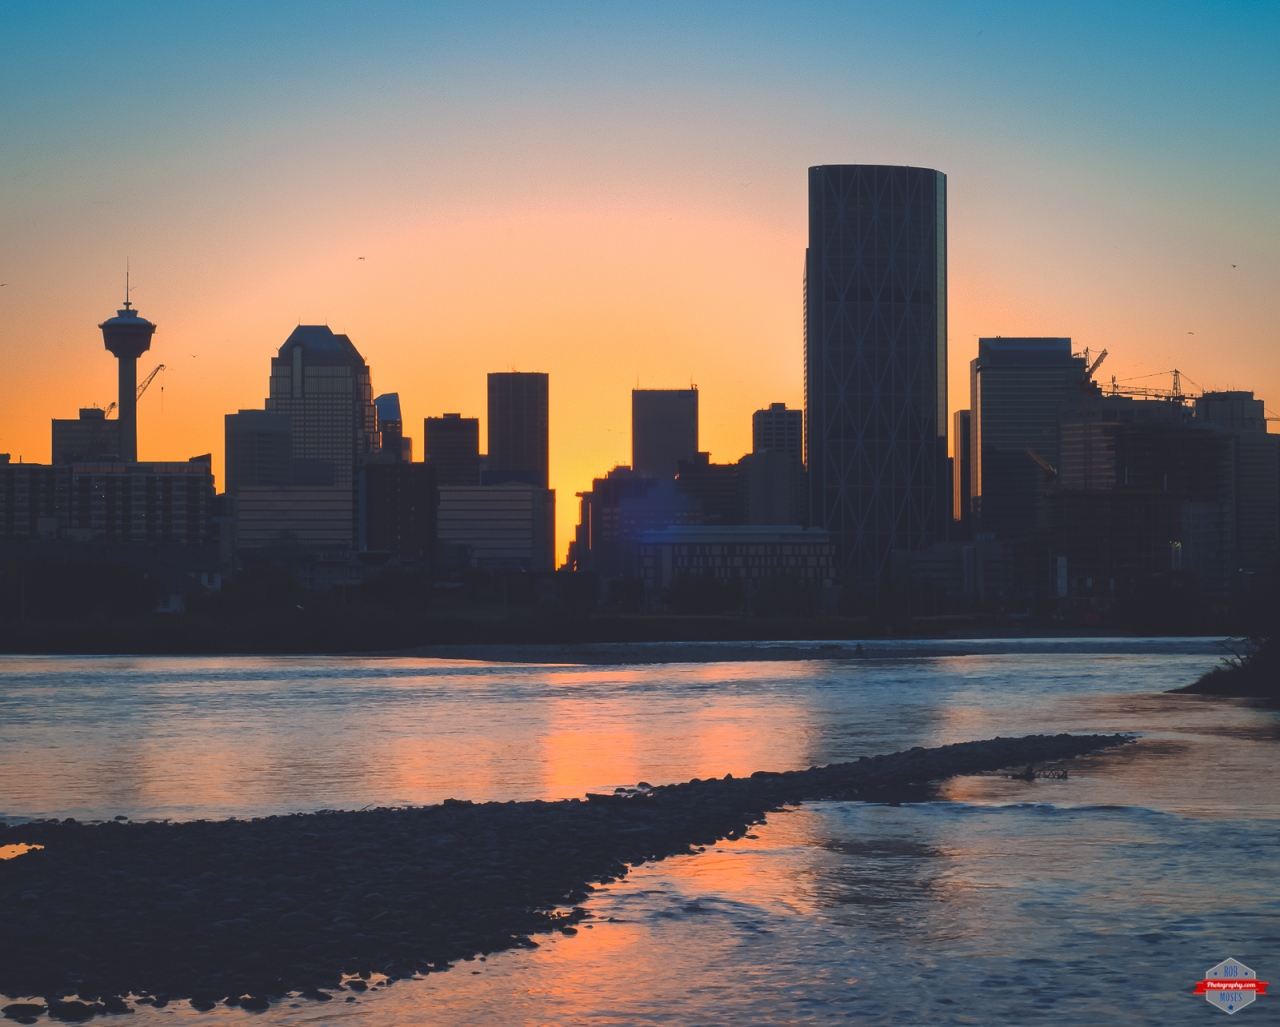 YYC bow river skyline sunset Rob Moses Photography Photographers Native American Famous un celebrity Portland Vancouver Calgary Seattle Tlingit Ojibawa Top Popular Best Good pdx Canadian.jpg